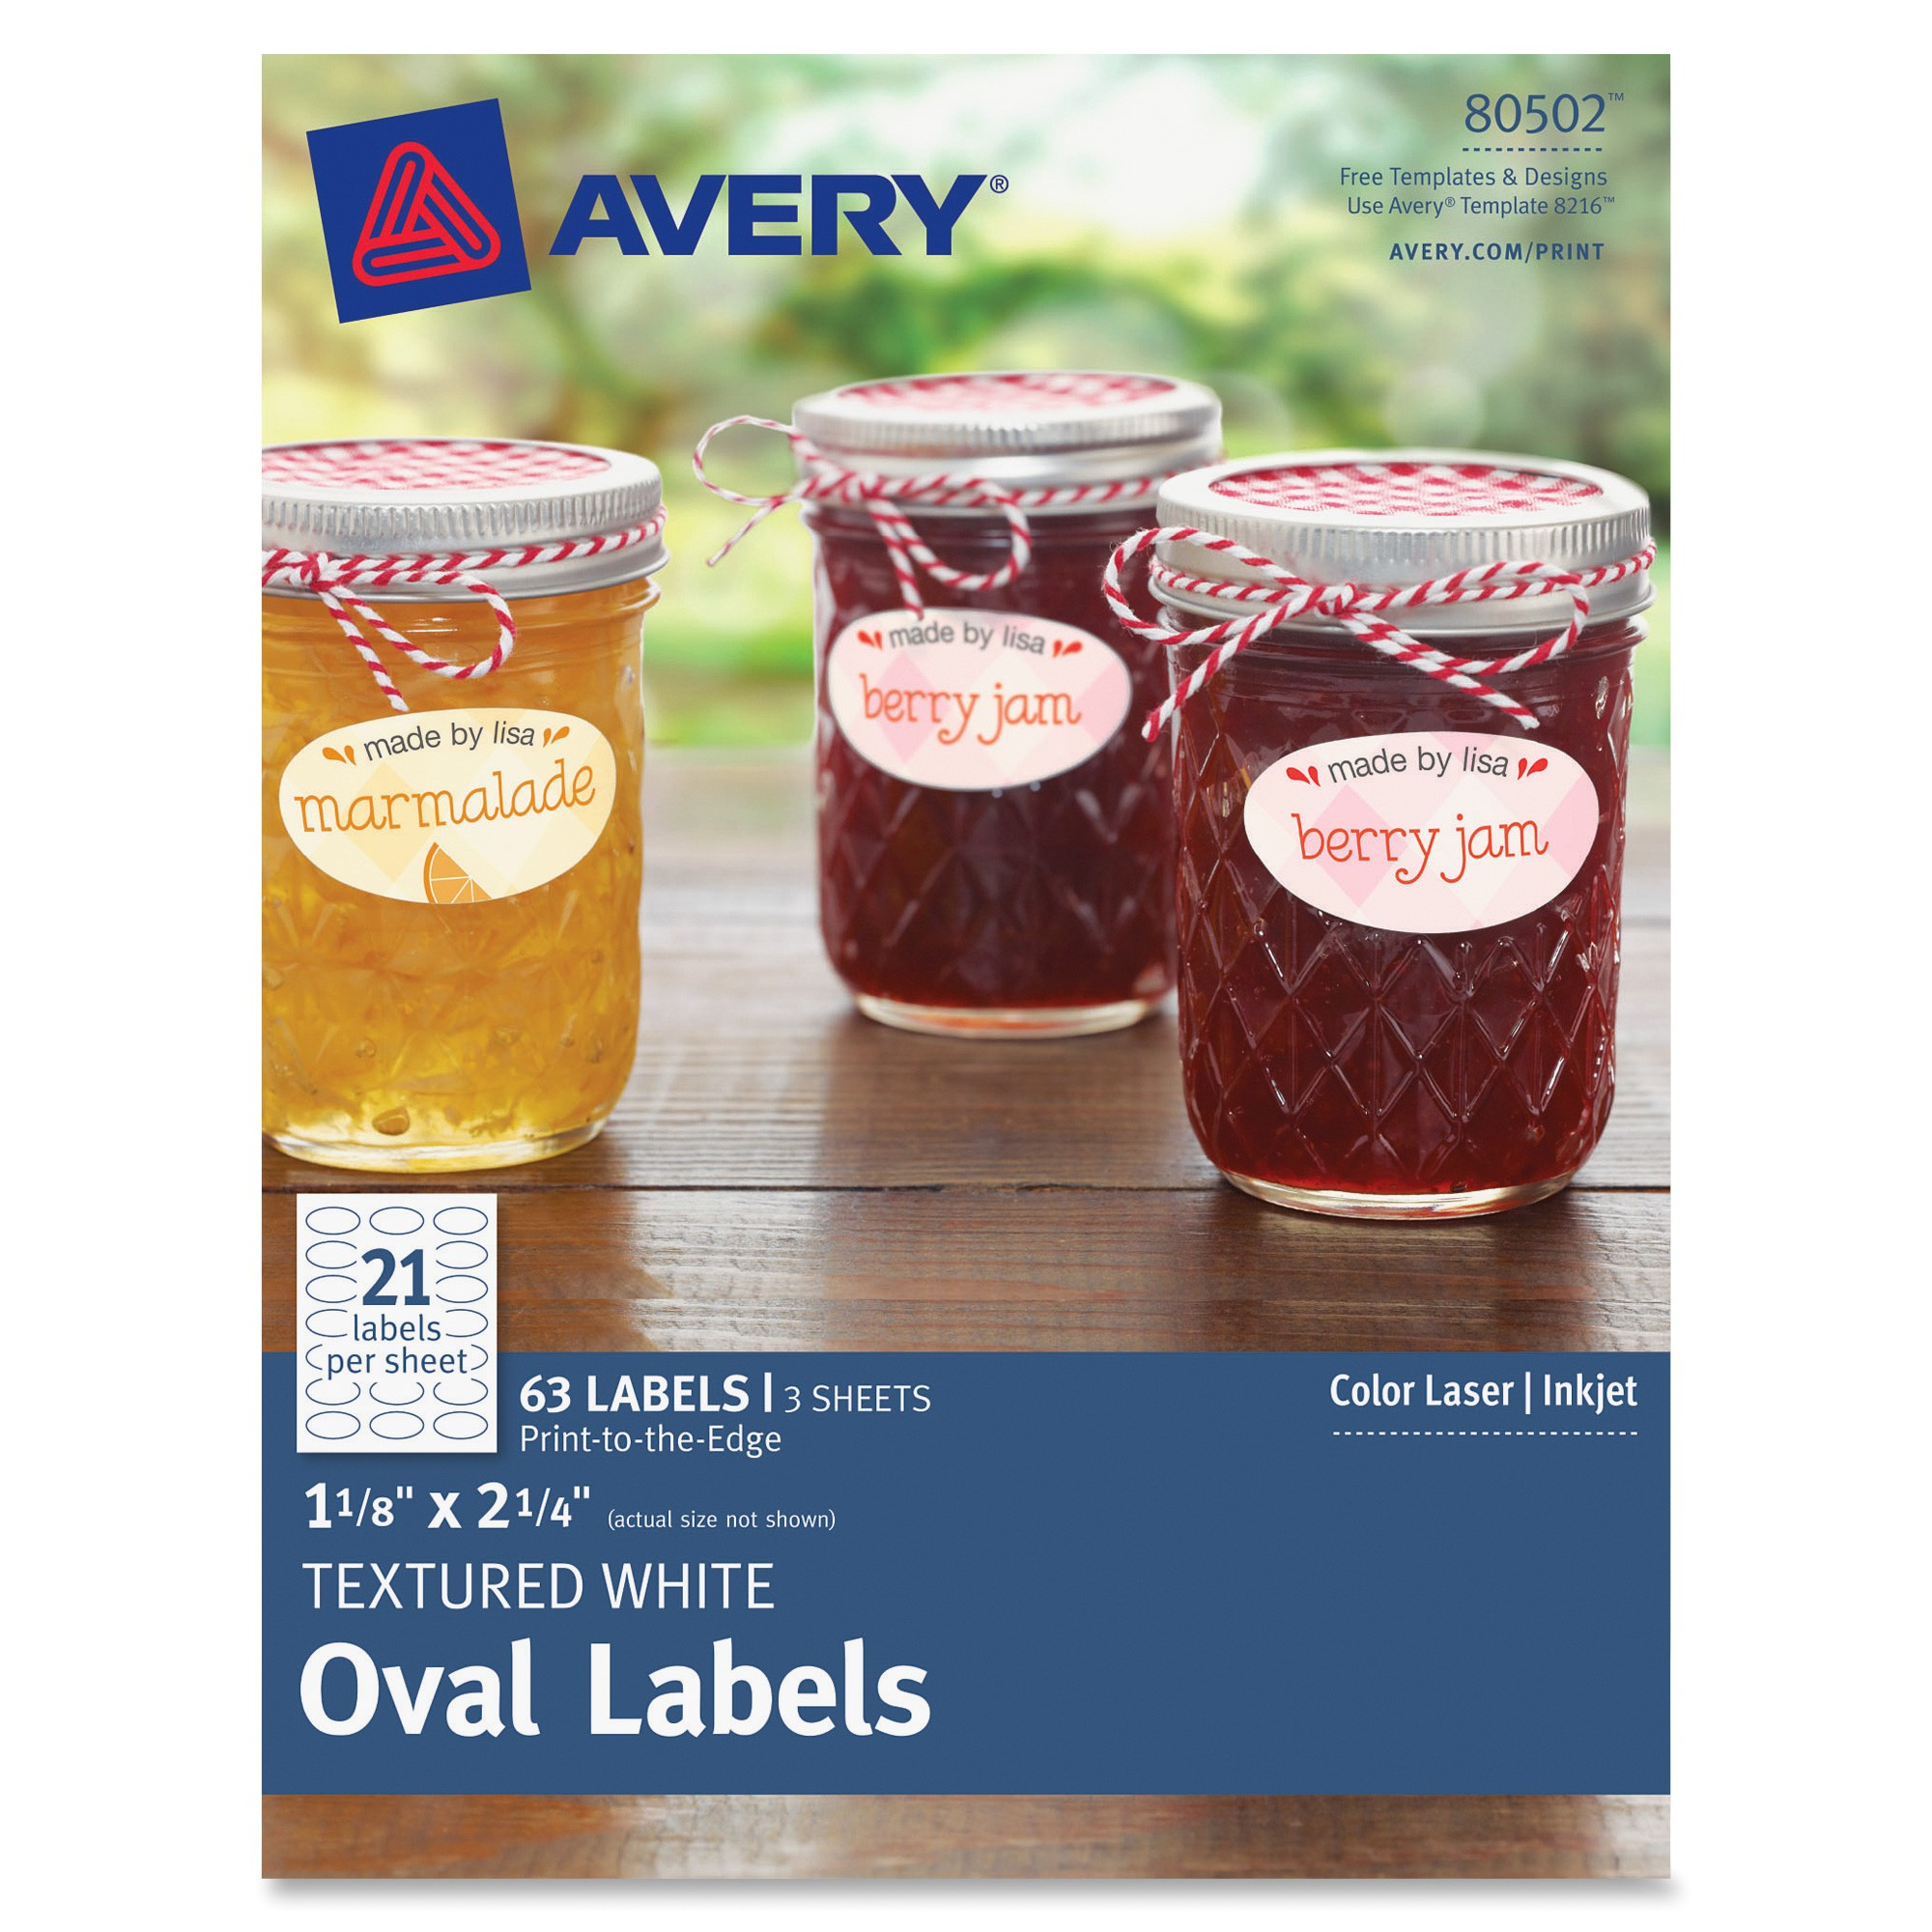 avery textured white oval labels ave80502